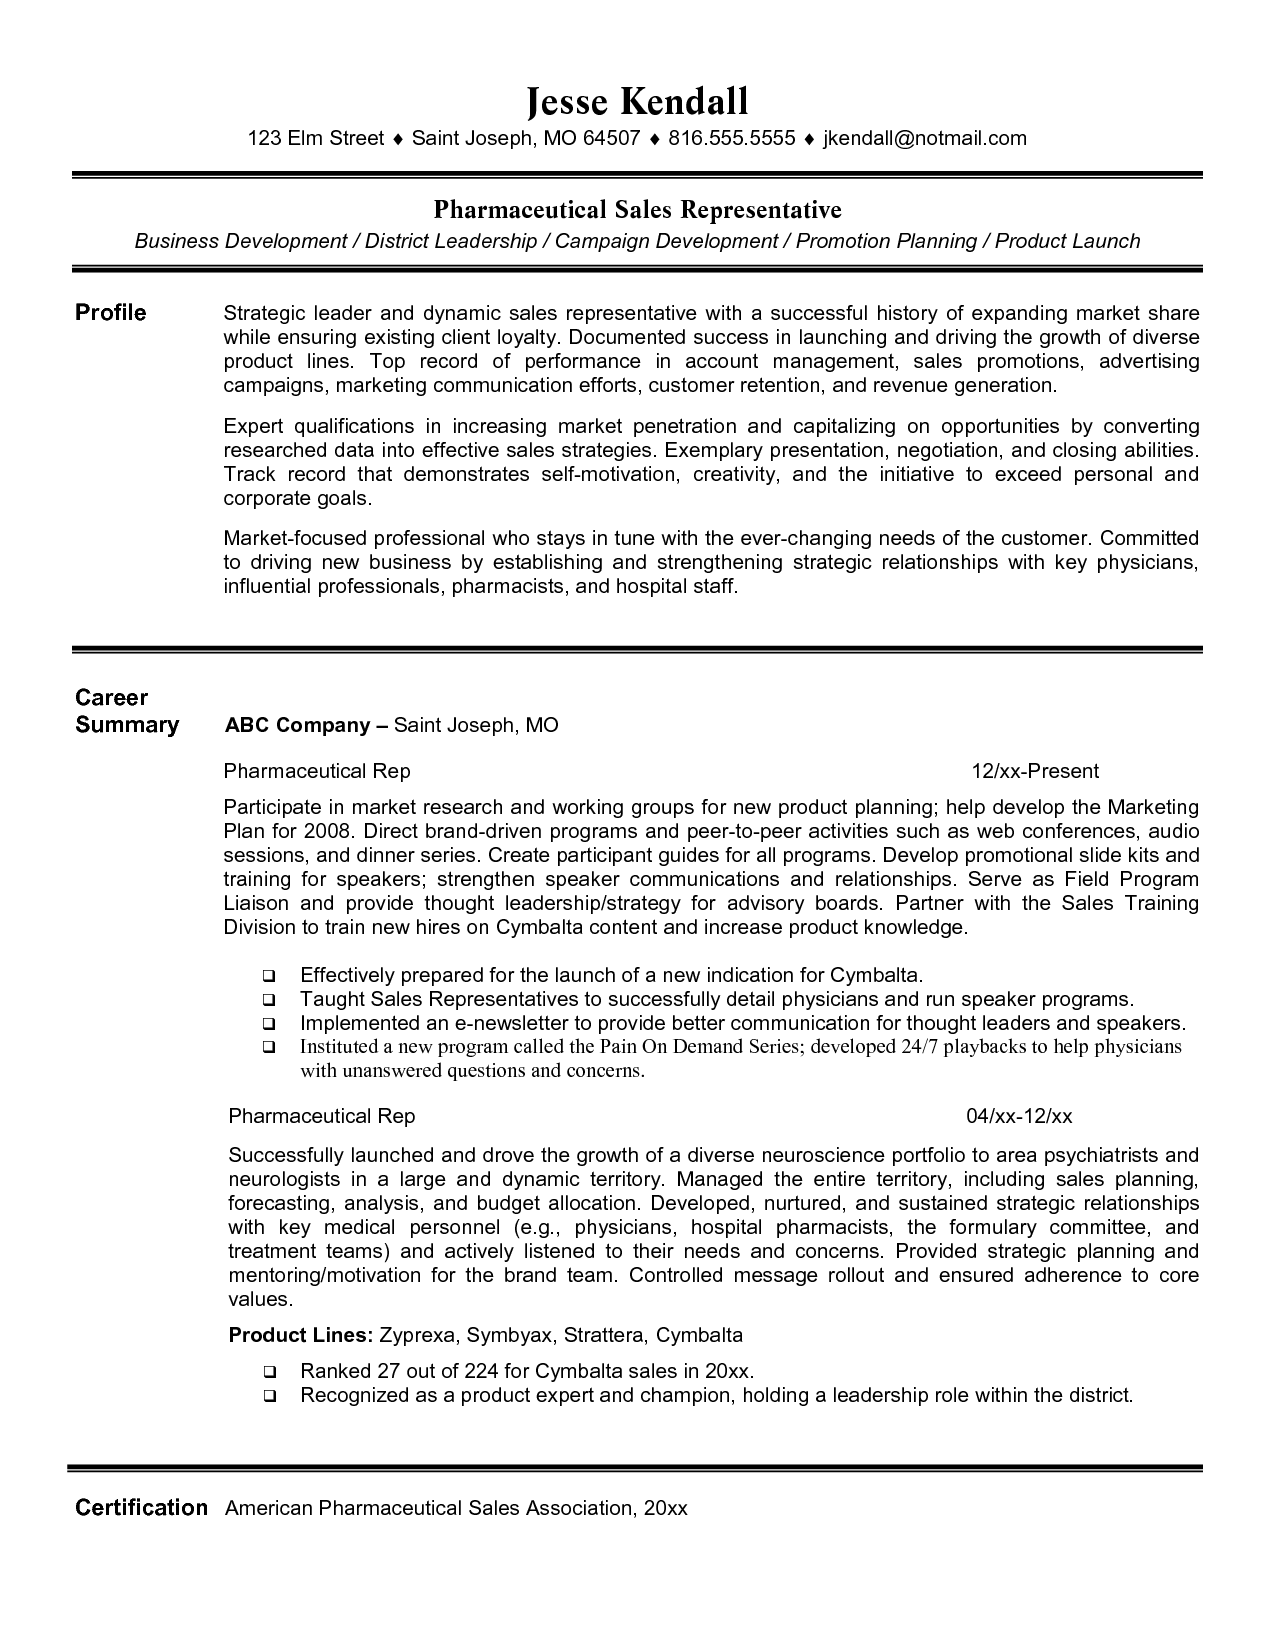 Pharmaceutical Sales Rep Resume Sample Entry Level Pharmaceutical Sales  Resume  Sample Entry Level Resume